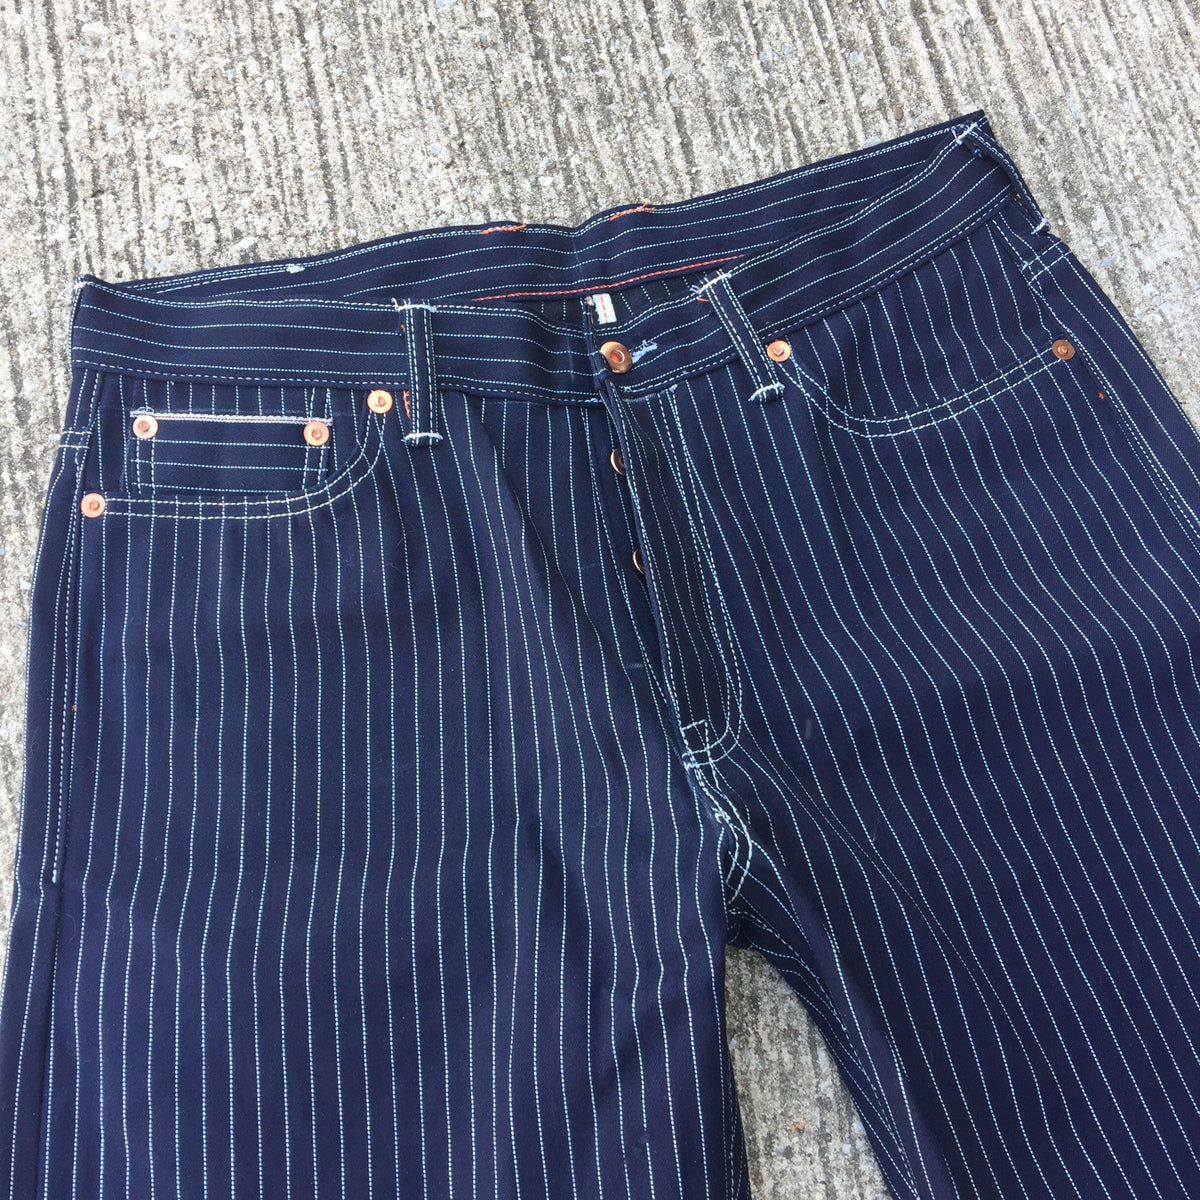 OPSTK 13.5oz Japanese Indigo/Indigo WABASH White Selvage 5 Pocket Version 35W X 31L 905 Reg Fit